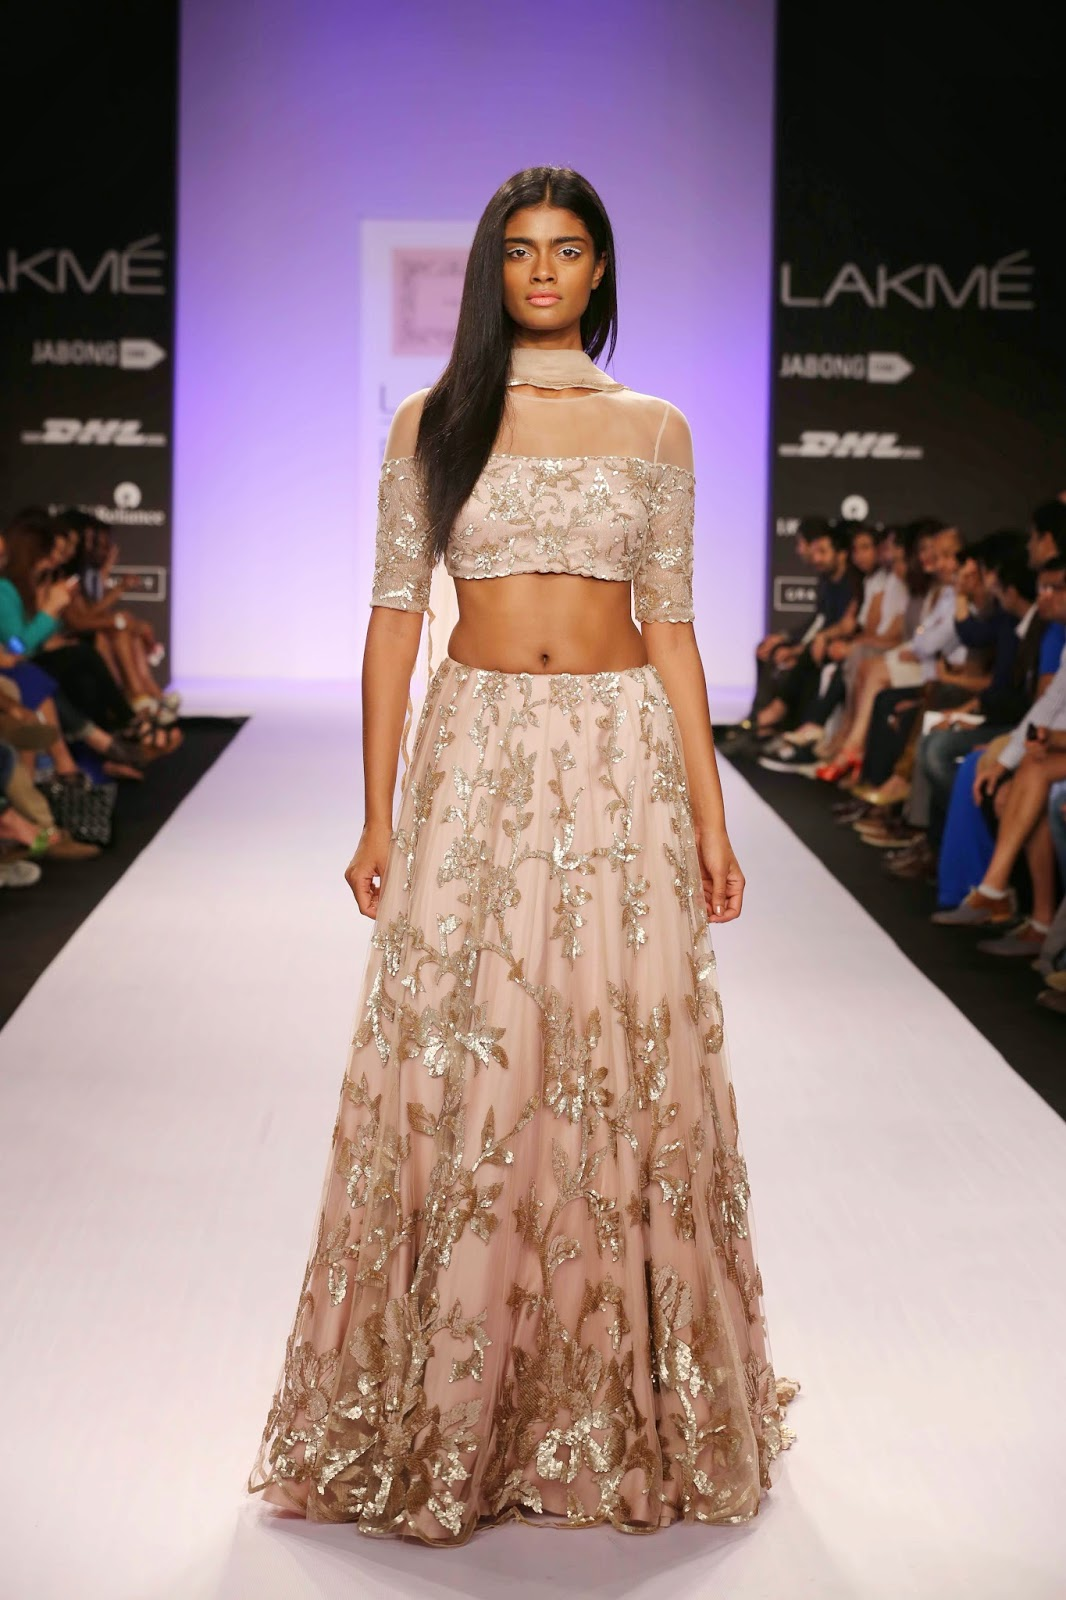 It was a collection, that one could imagine on Hollywood beauties like Ali Macgraw. Bringing the glamour of the early 1070's on to the runway at Lakmé Fashion Week Summer/Resort 2014, Shehla Khan unleashed a high octane line that was ideal for the glamorous priestesses of fashion in India as well as abroad.